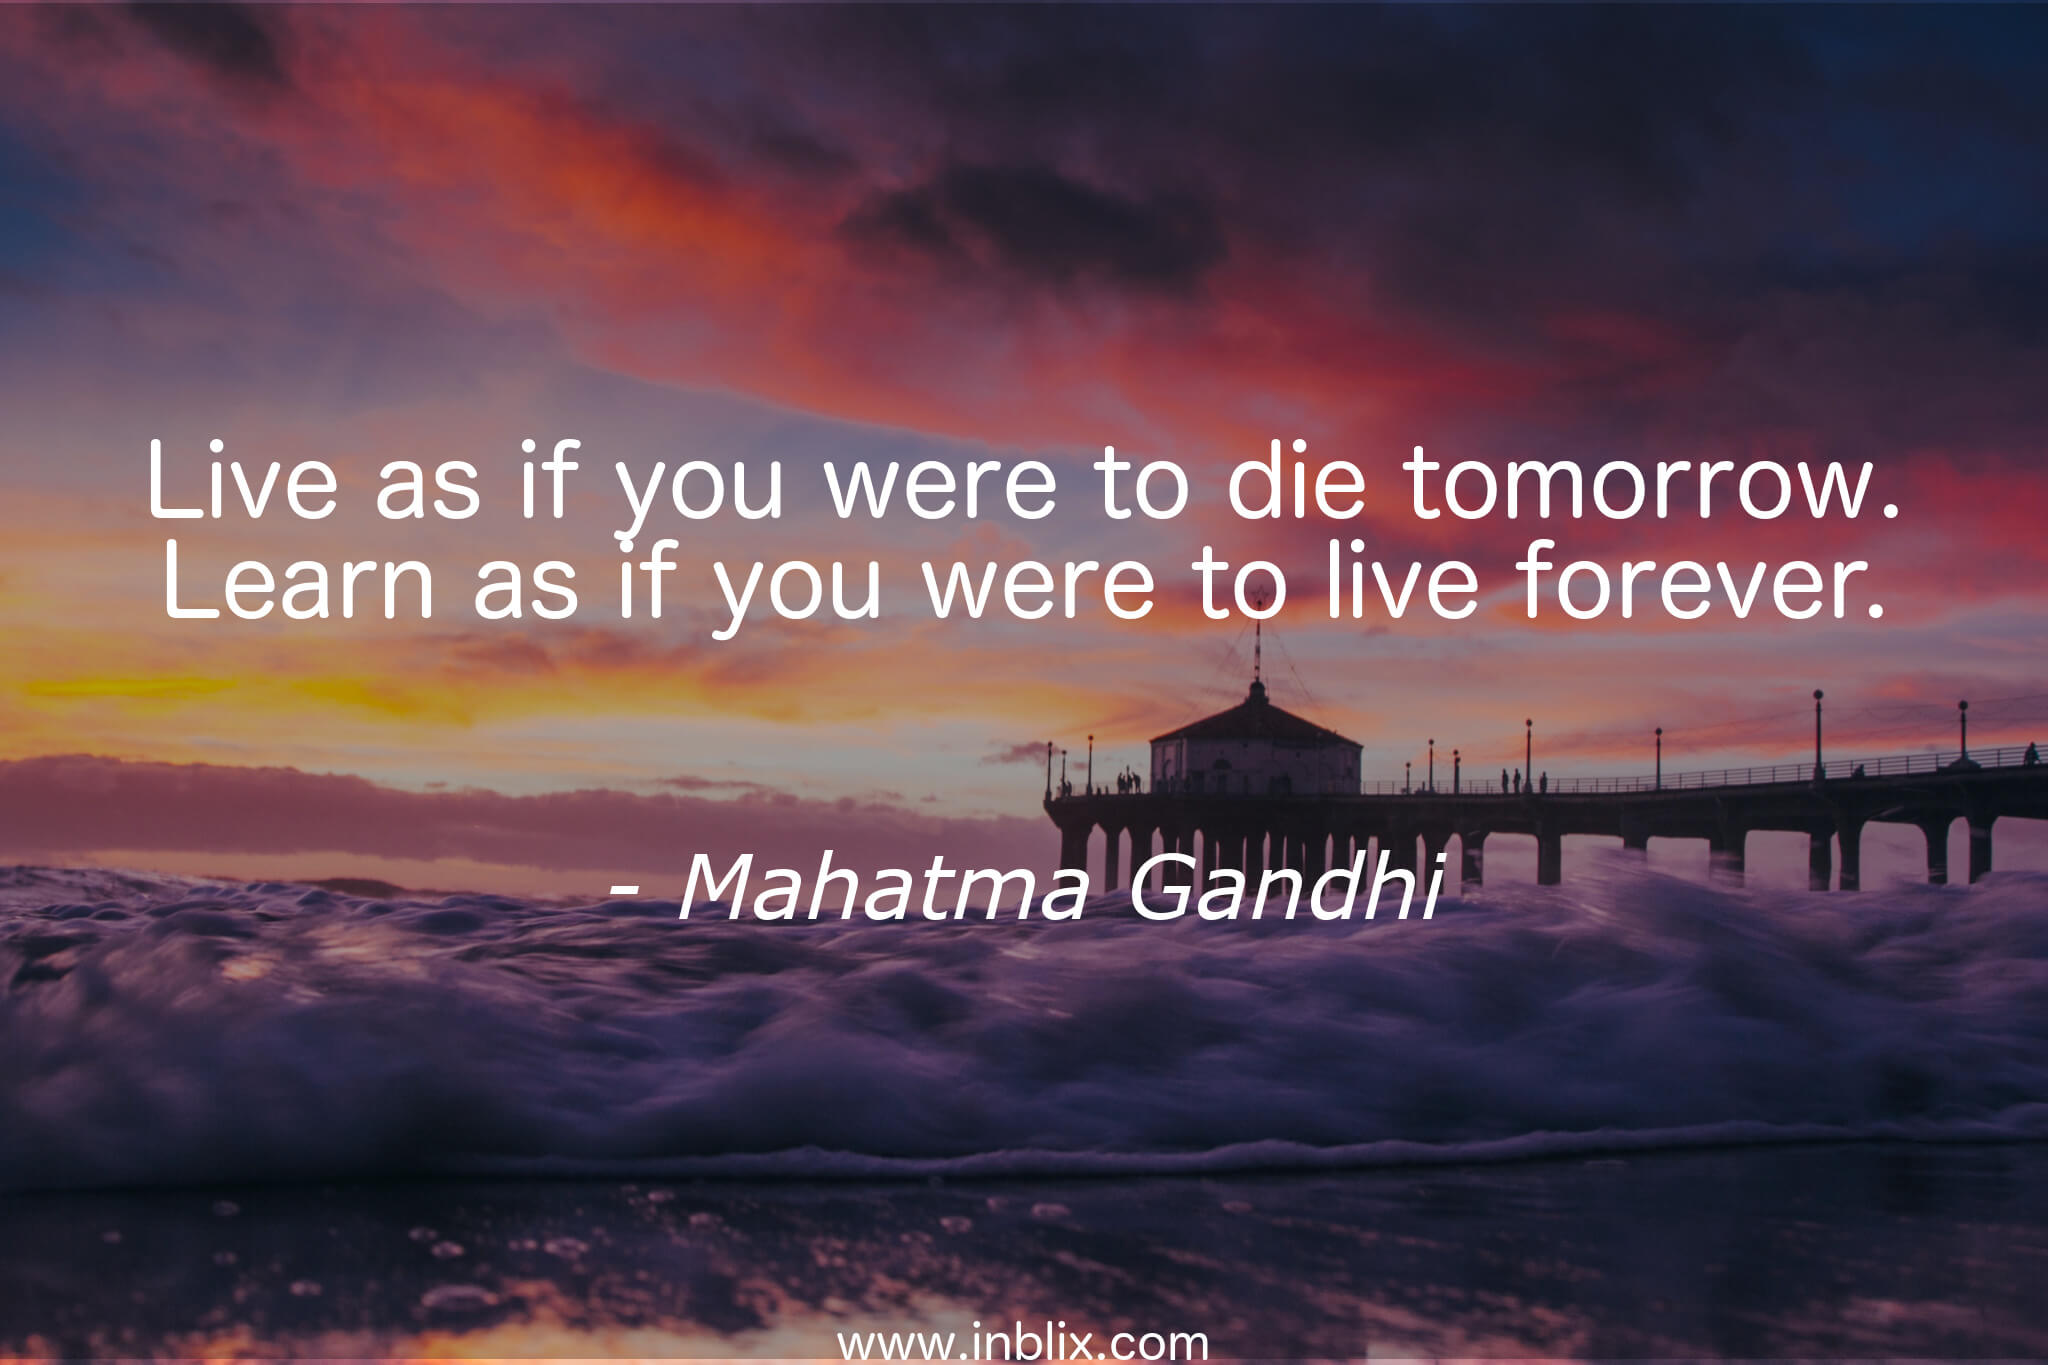 Live As If You Were To Die Tom By Mahatma Gandhi